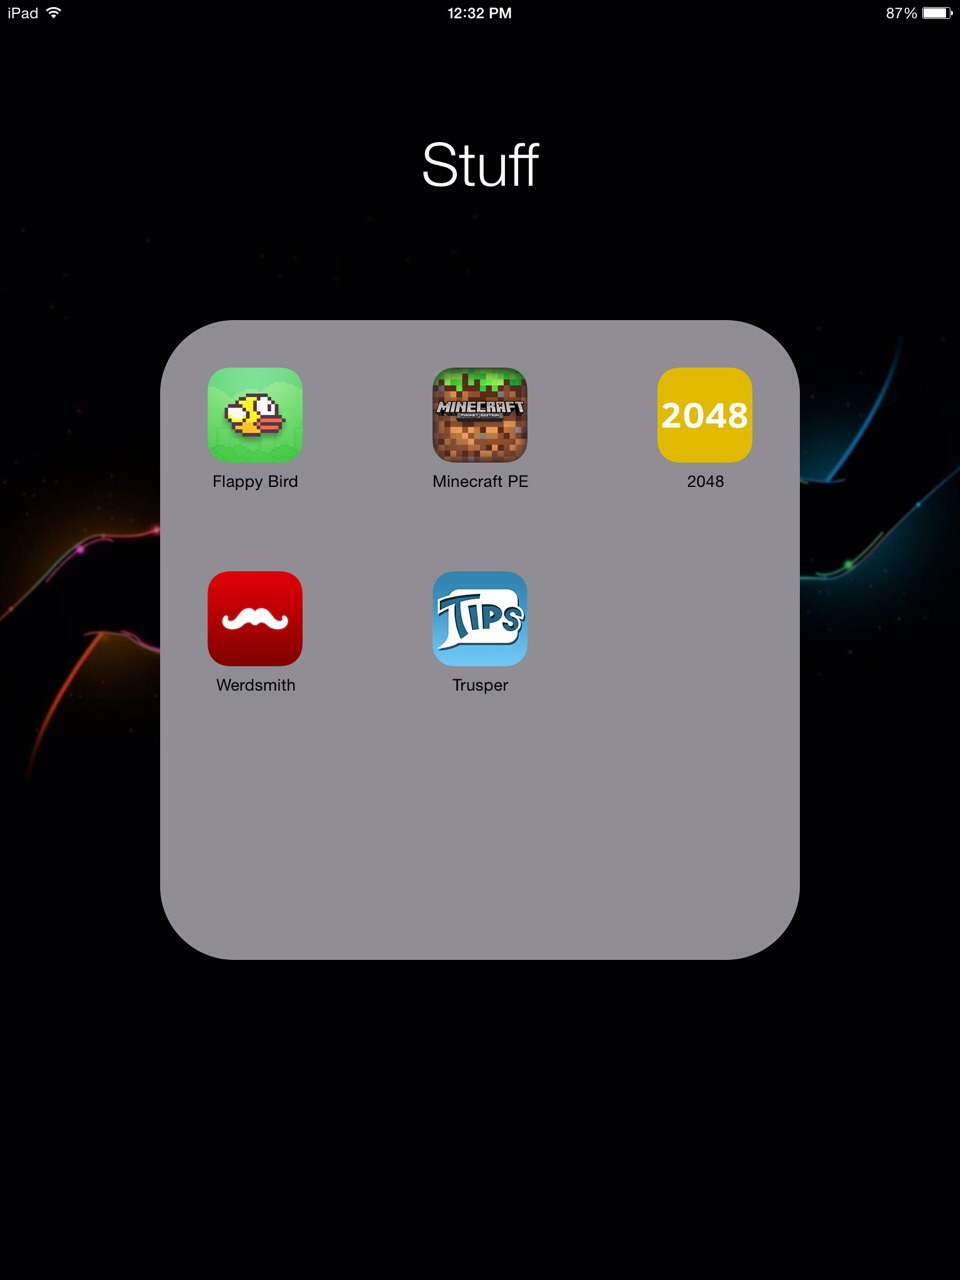 These are all of the apps I have on my iPad And I use them all everyday